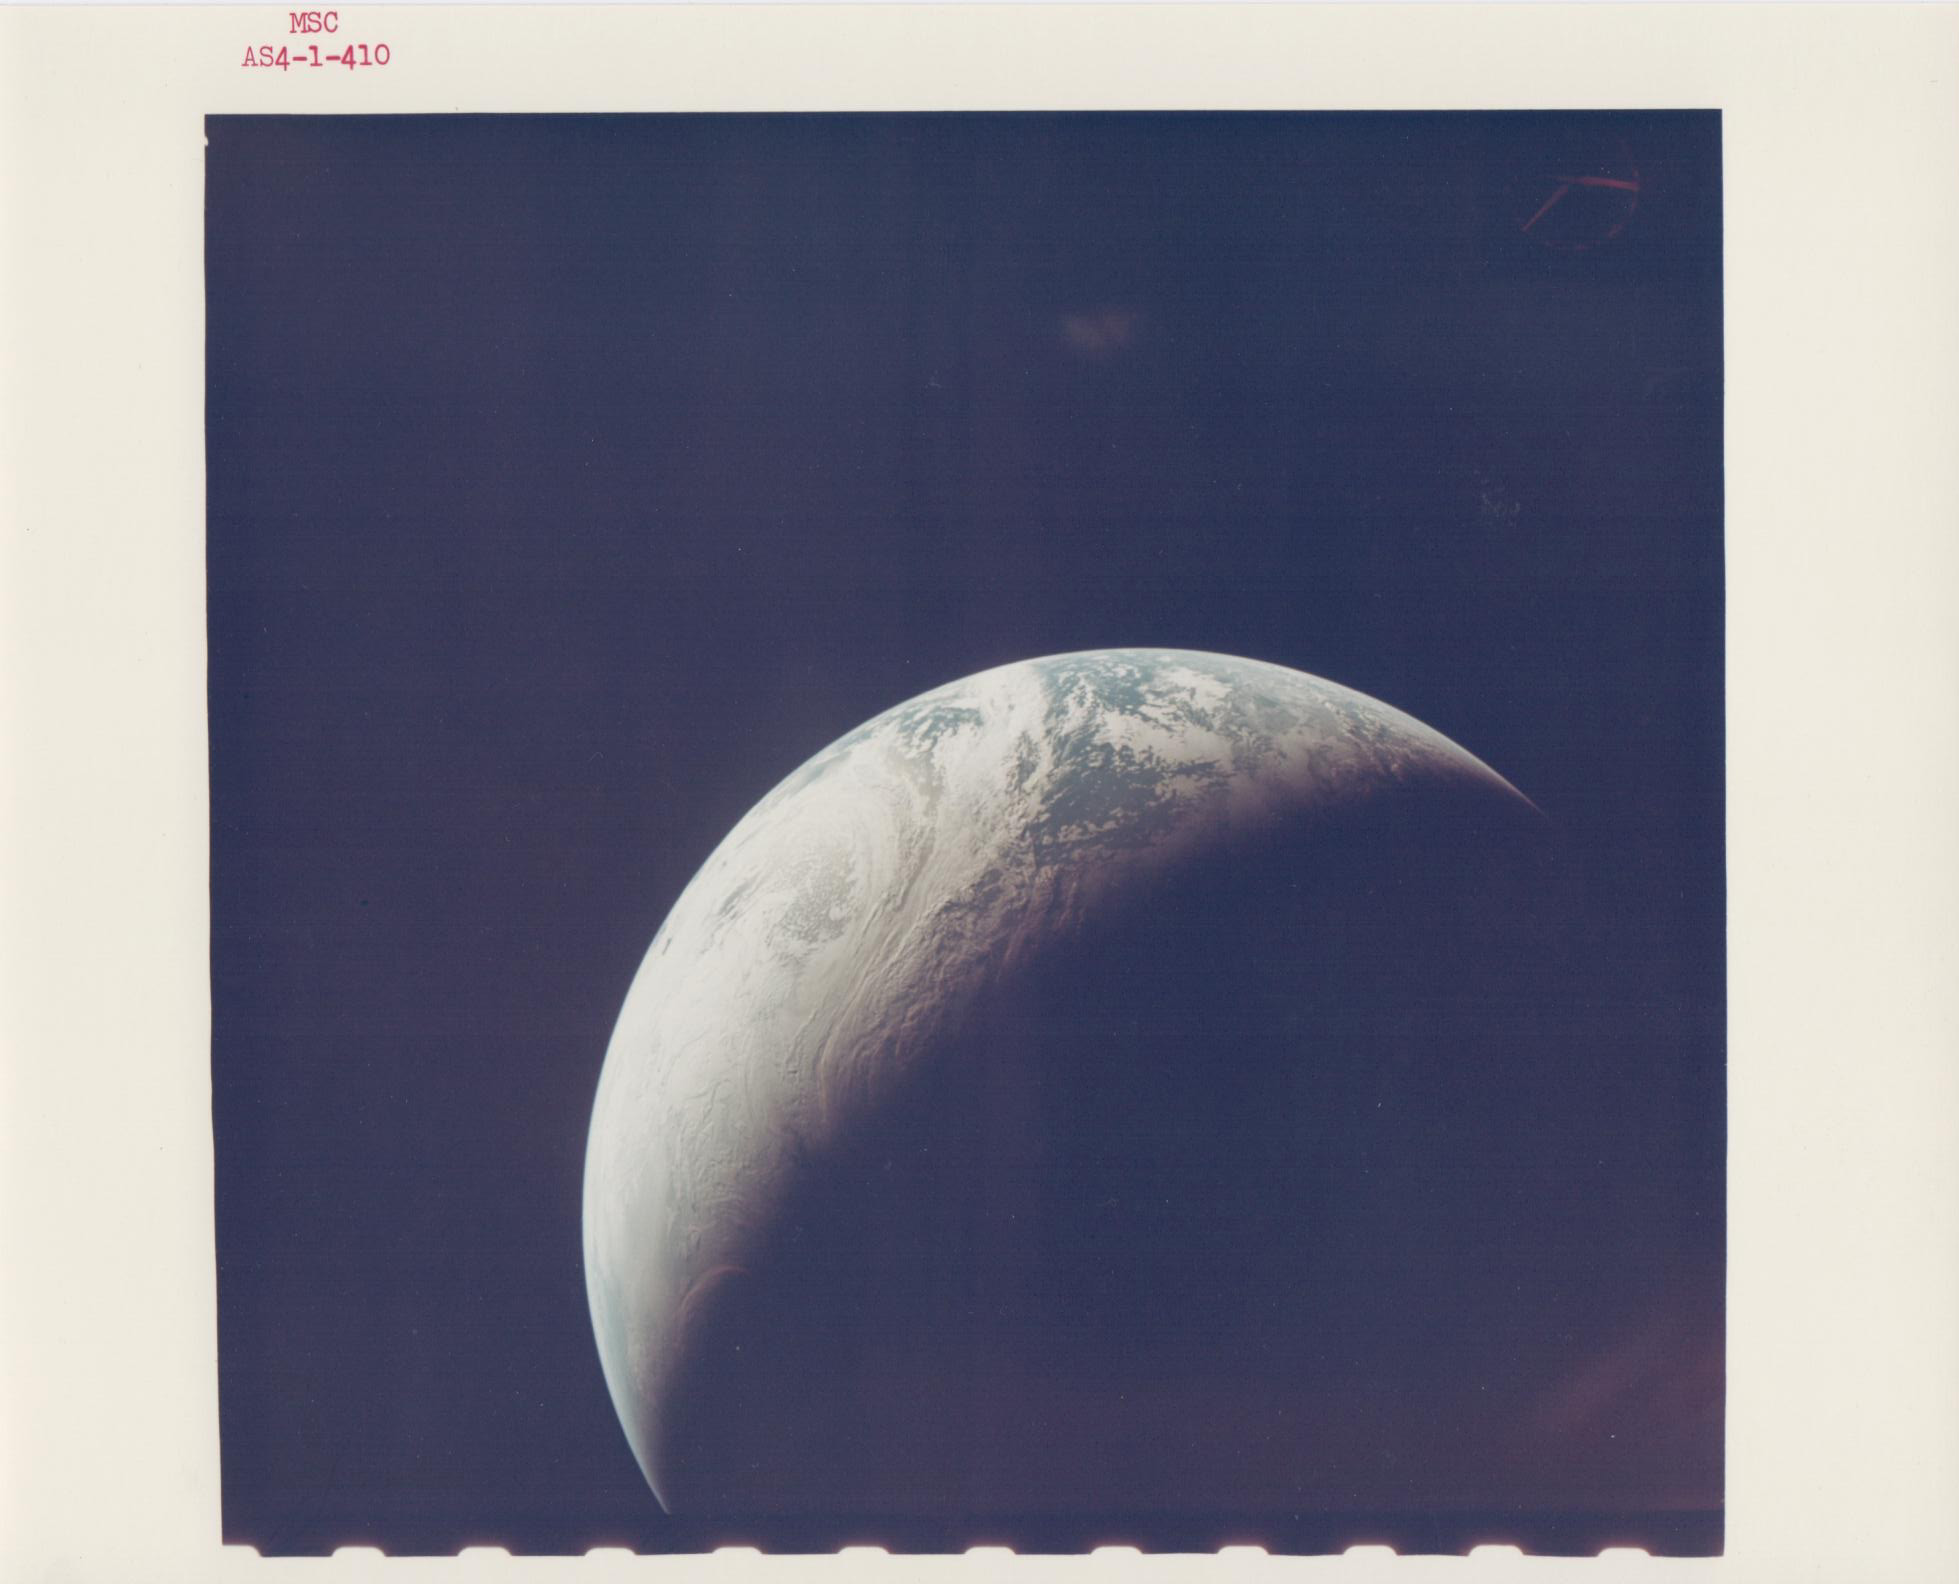 Photo taken 1967 by Apollo 4.  Check out all these other cool space pics too .